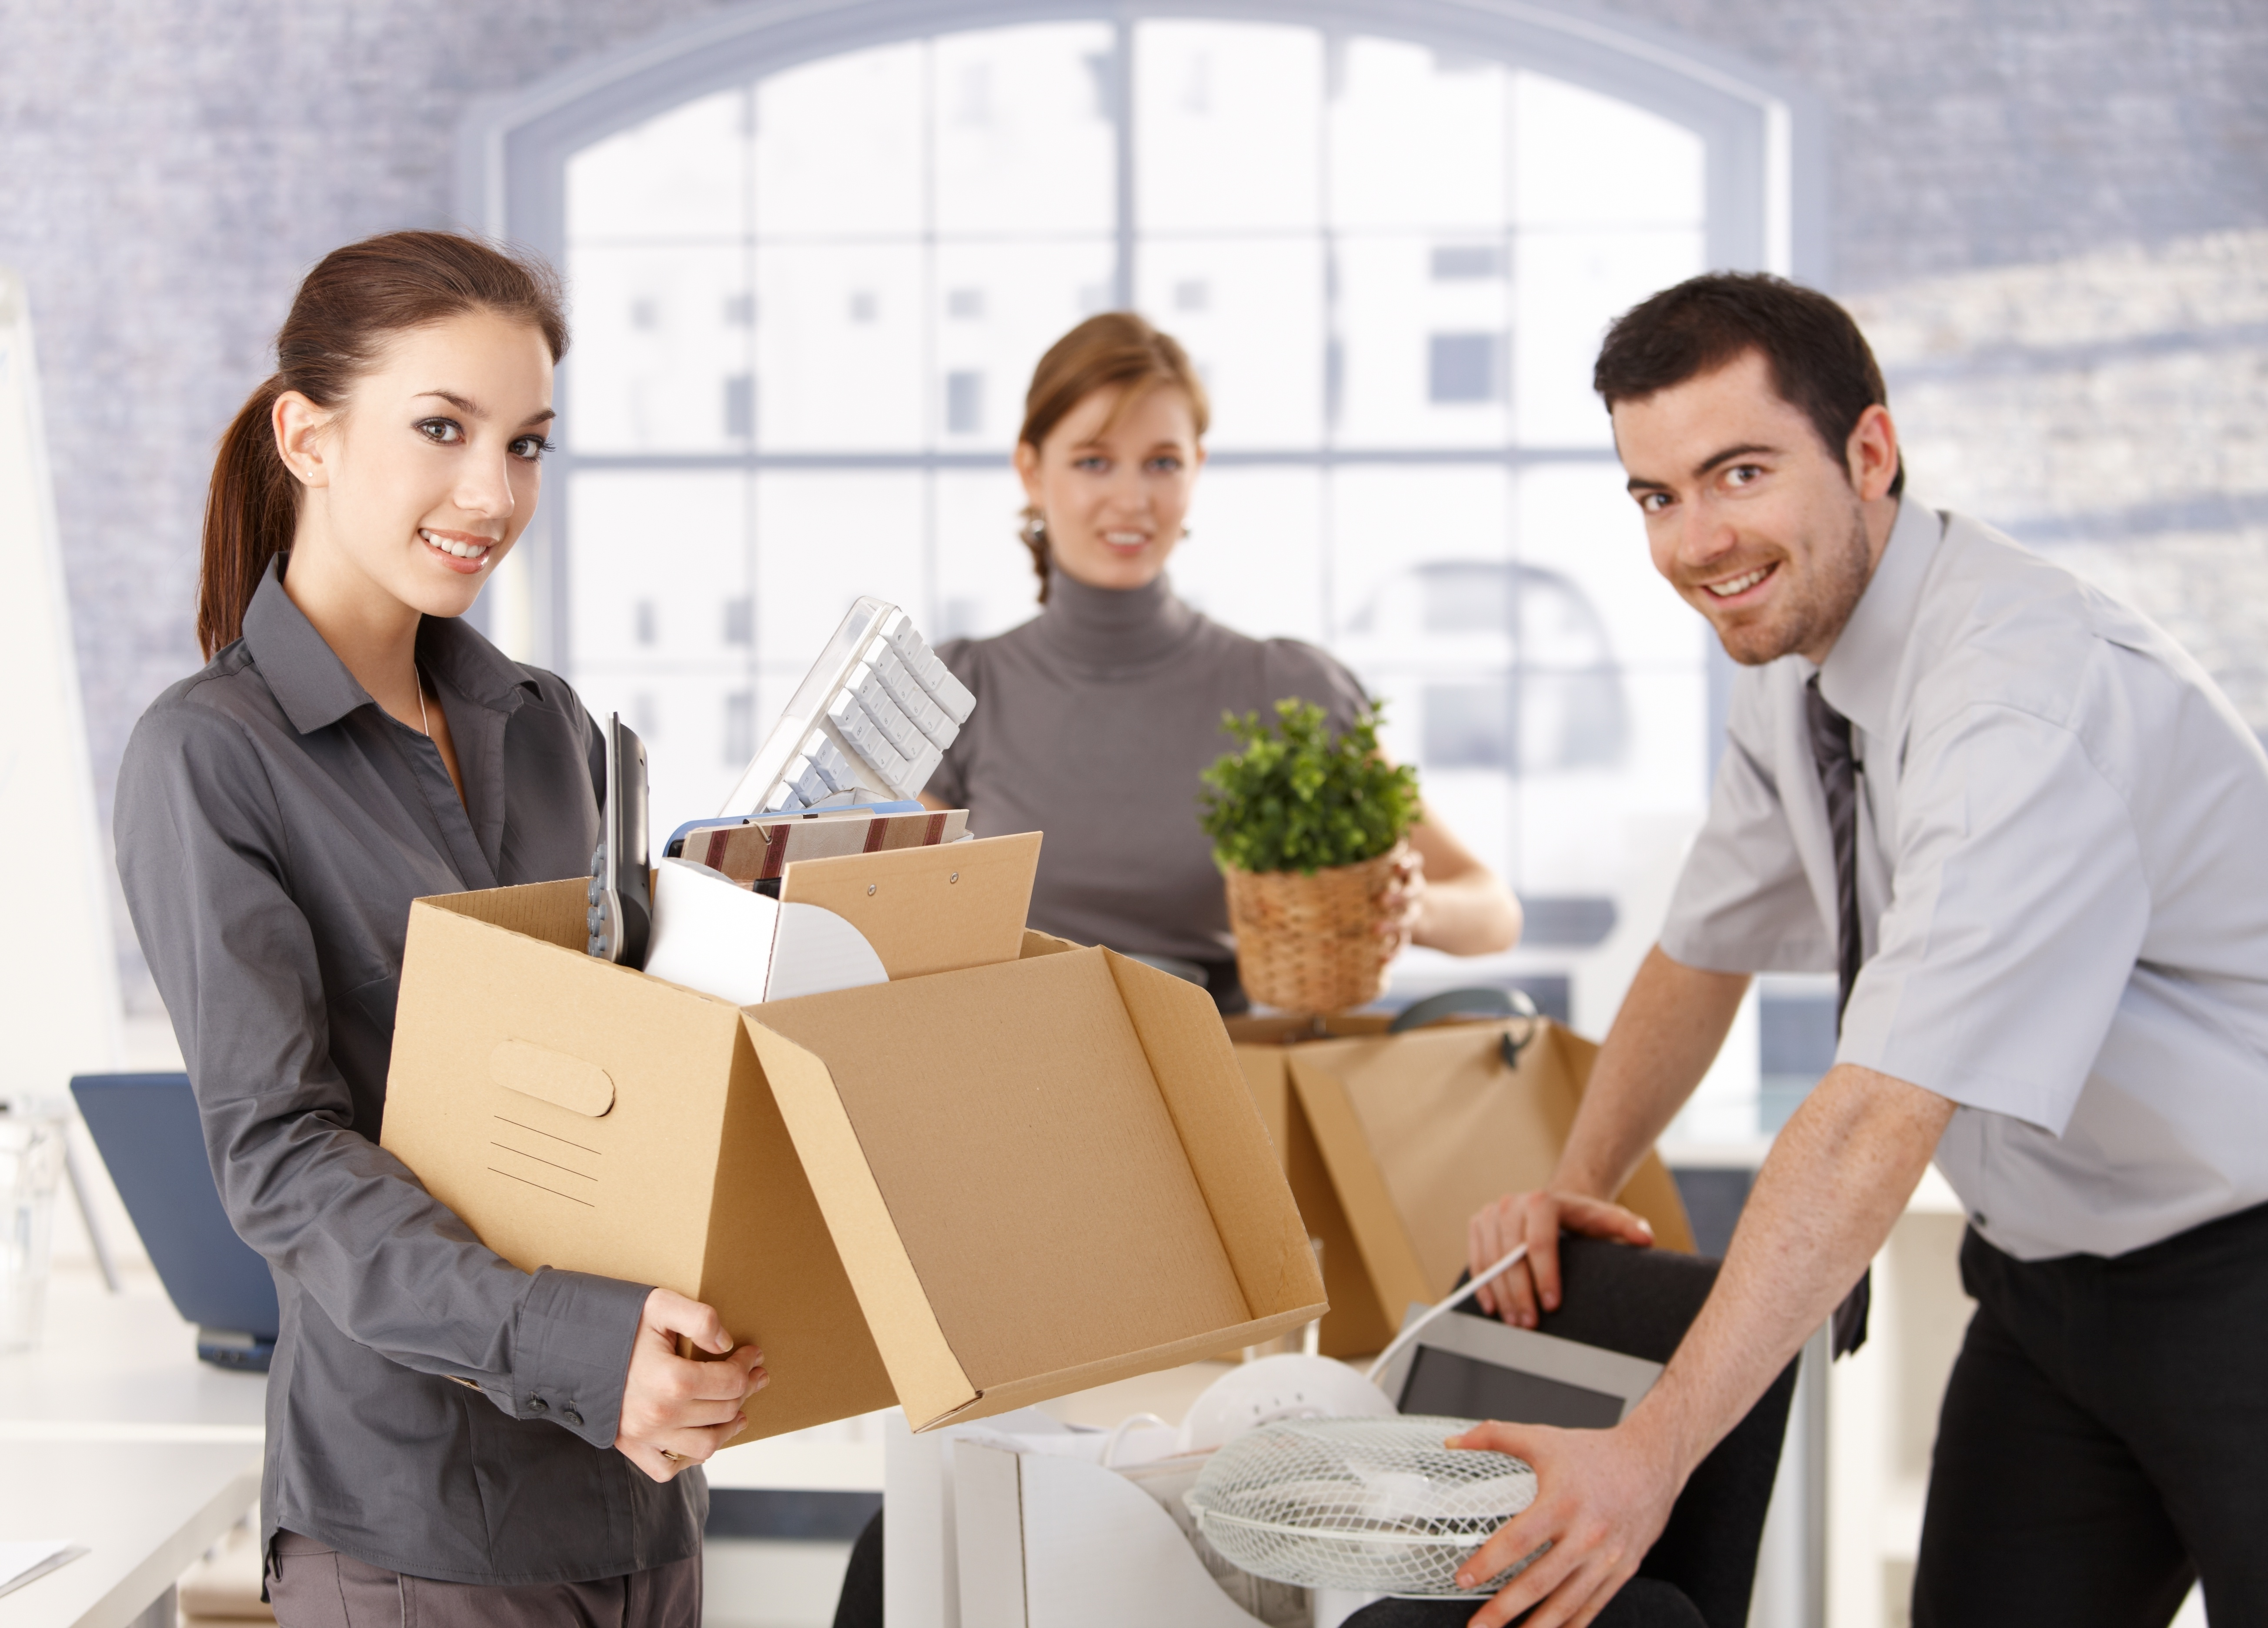 OBBI-blog-3-how-to-prepare-employees-for-an-office-move.jpg